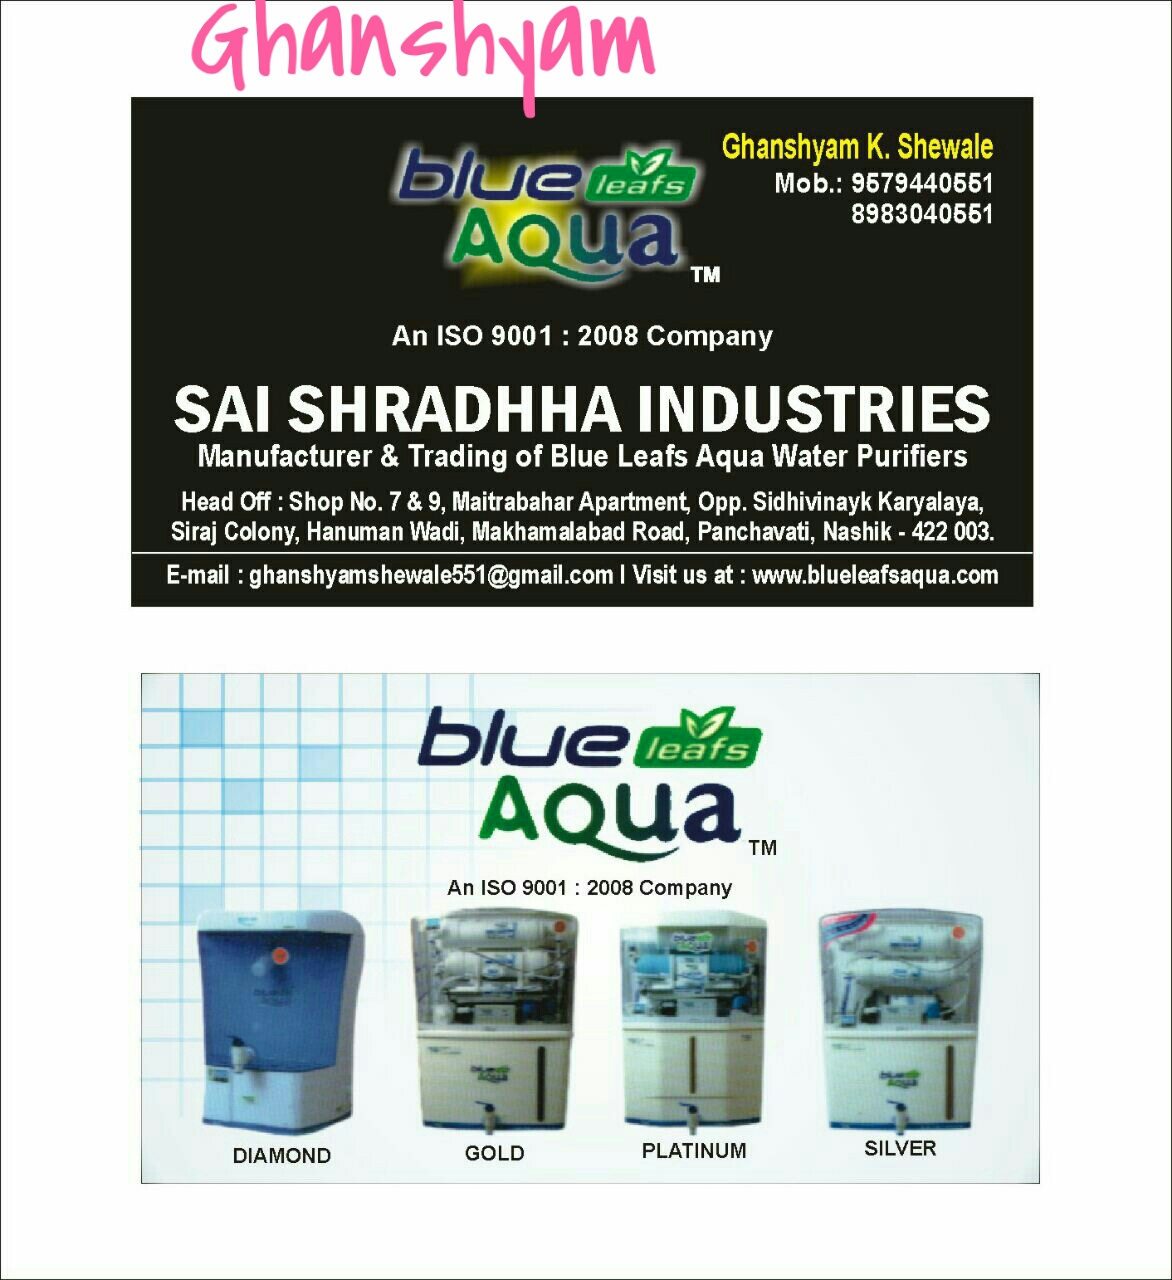 Ghanshyam patil all tayp water purifier sels and services and wholesale products in order to provide you with gst products brand new products 9579440551